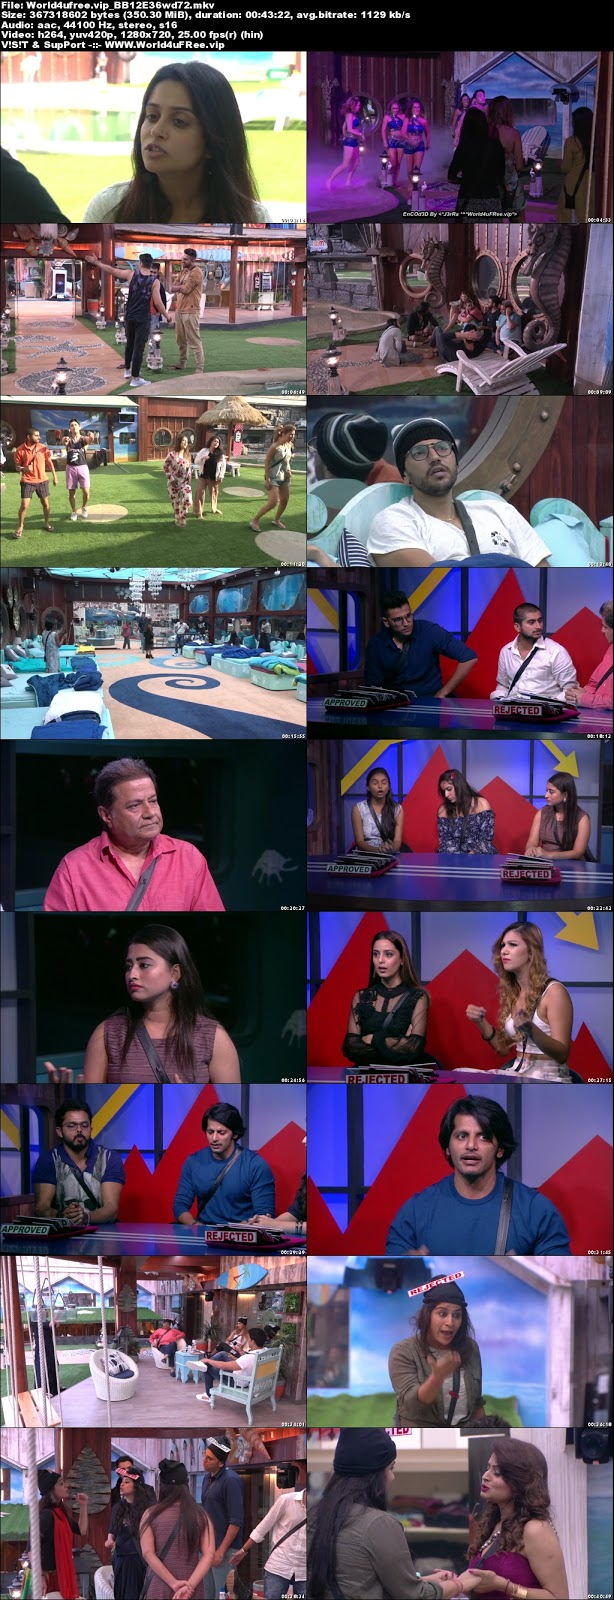 Bigg Boss 12 Episode 36 22 October 2018 720p WEBRip 350Mb x264 world4ufree.vip tv show Episode 36 22 October 2018 world4ufree.vip 300mb 250mb 300mb compressed small size free download or watch online at world4ufree.vip